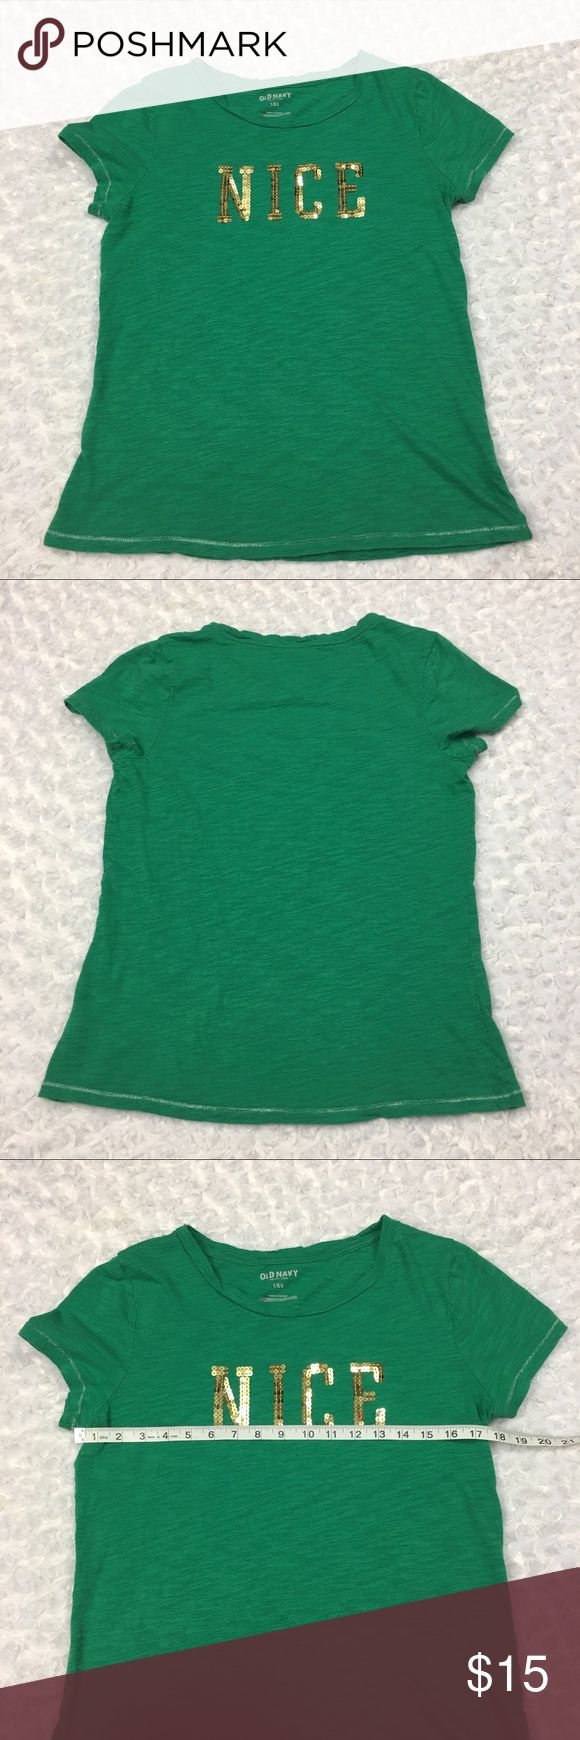 Christmas Holiday Tshirt Nice in Gold Sequins Womens Old Navy Green Cap Sleeve Christmas Holiday Tshirt w Nice in Gold Sequins  Size: Womens Large, SEE PHOTOS FOR MEASUREMENTS  Condition: Gently used, no flaws.  * This listing is for ONE (1) Shirt *  - Silver accent string at the hems. SEE PHOTOS  * See photos for measurements and more details *  Please note: Color may vary slightly due to different display screen calibrations.  [D-46] Old Navy Tops Tees - Short Sleeve